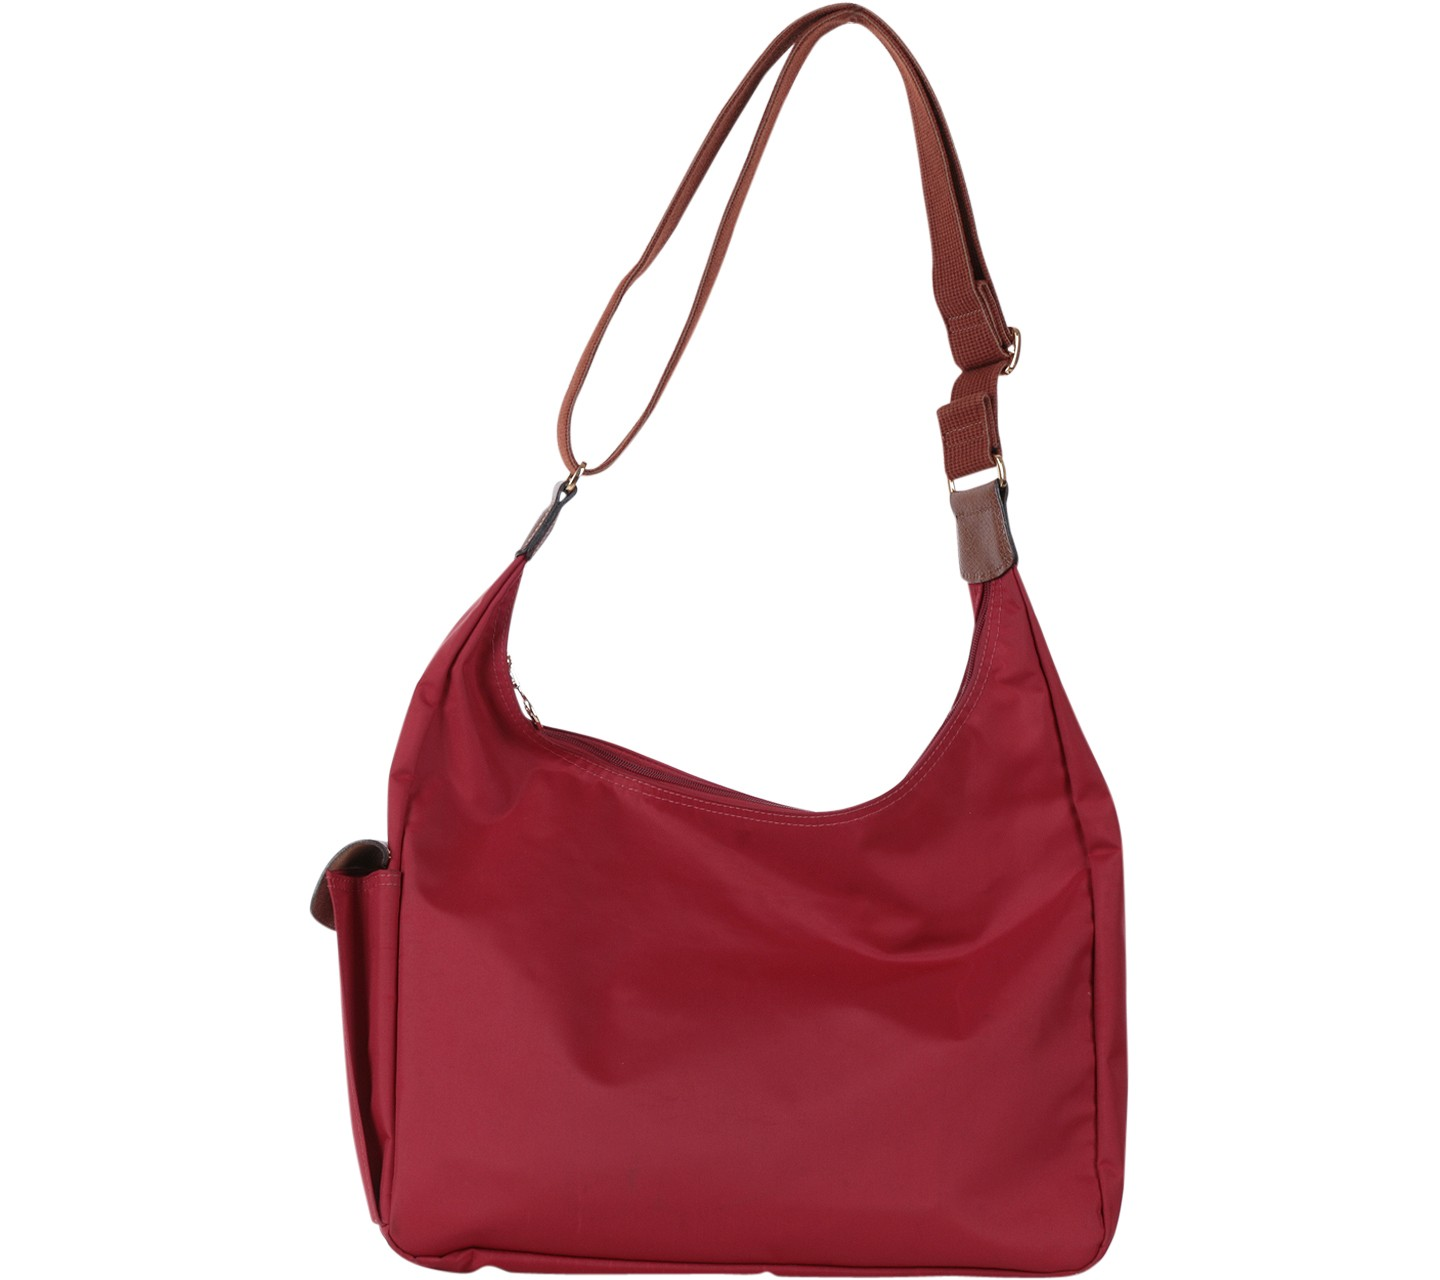 Longchamp Red Le Pliage Hobo Bag Sling Bag